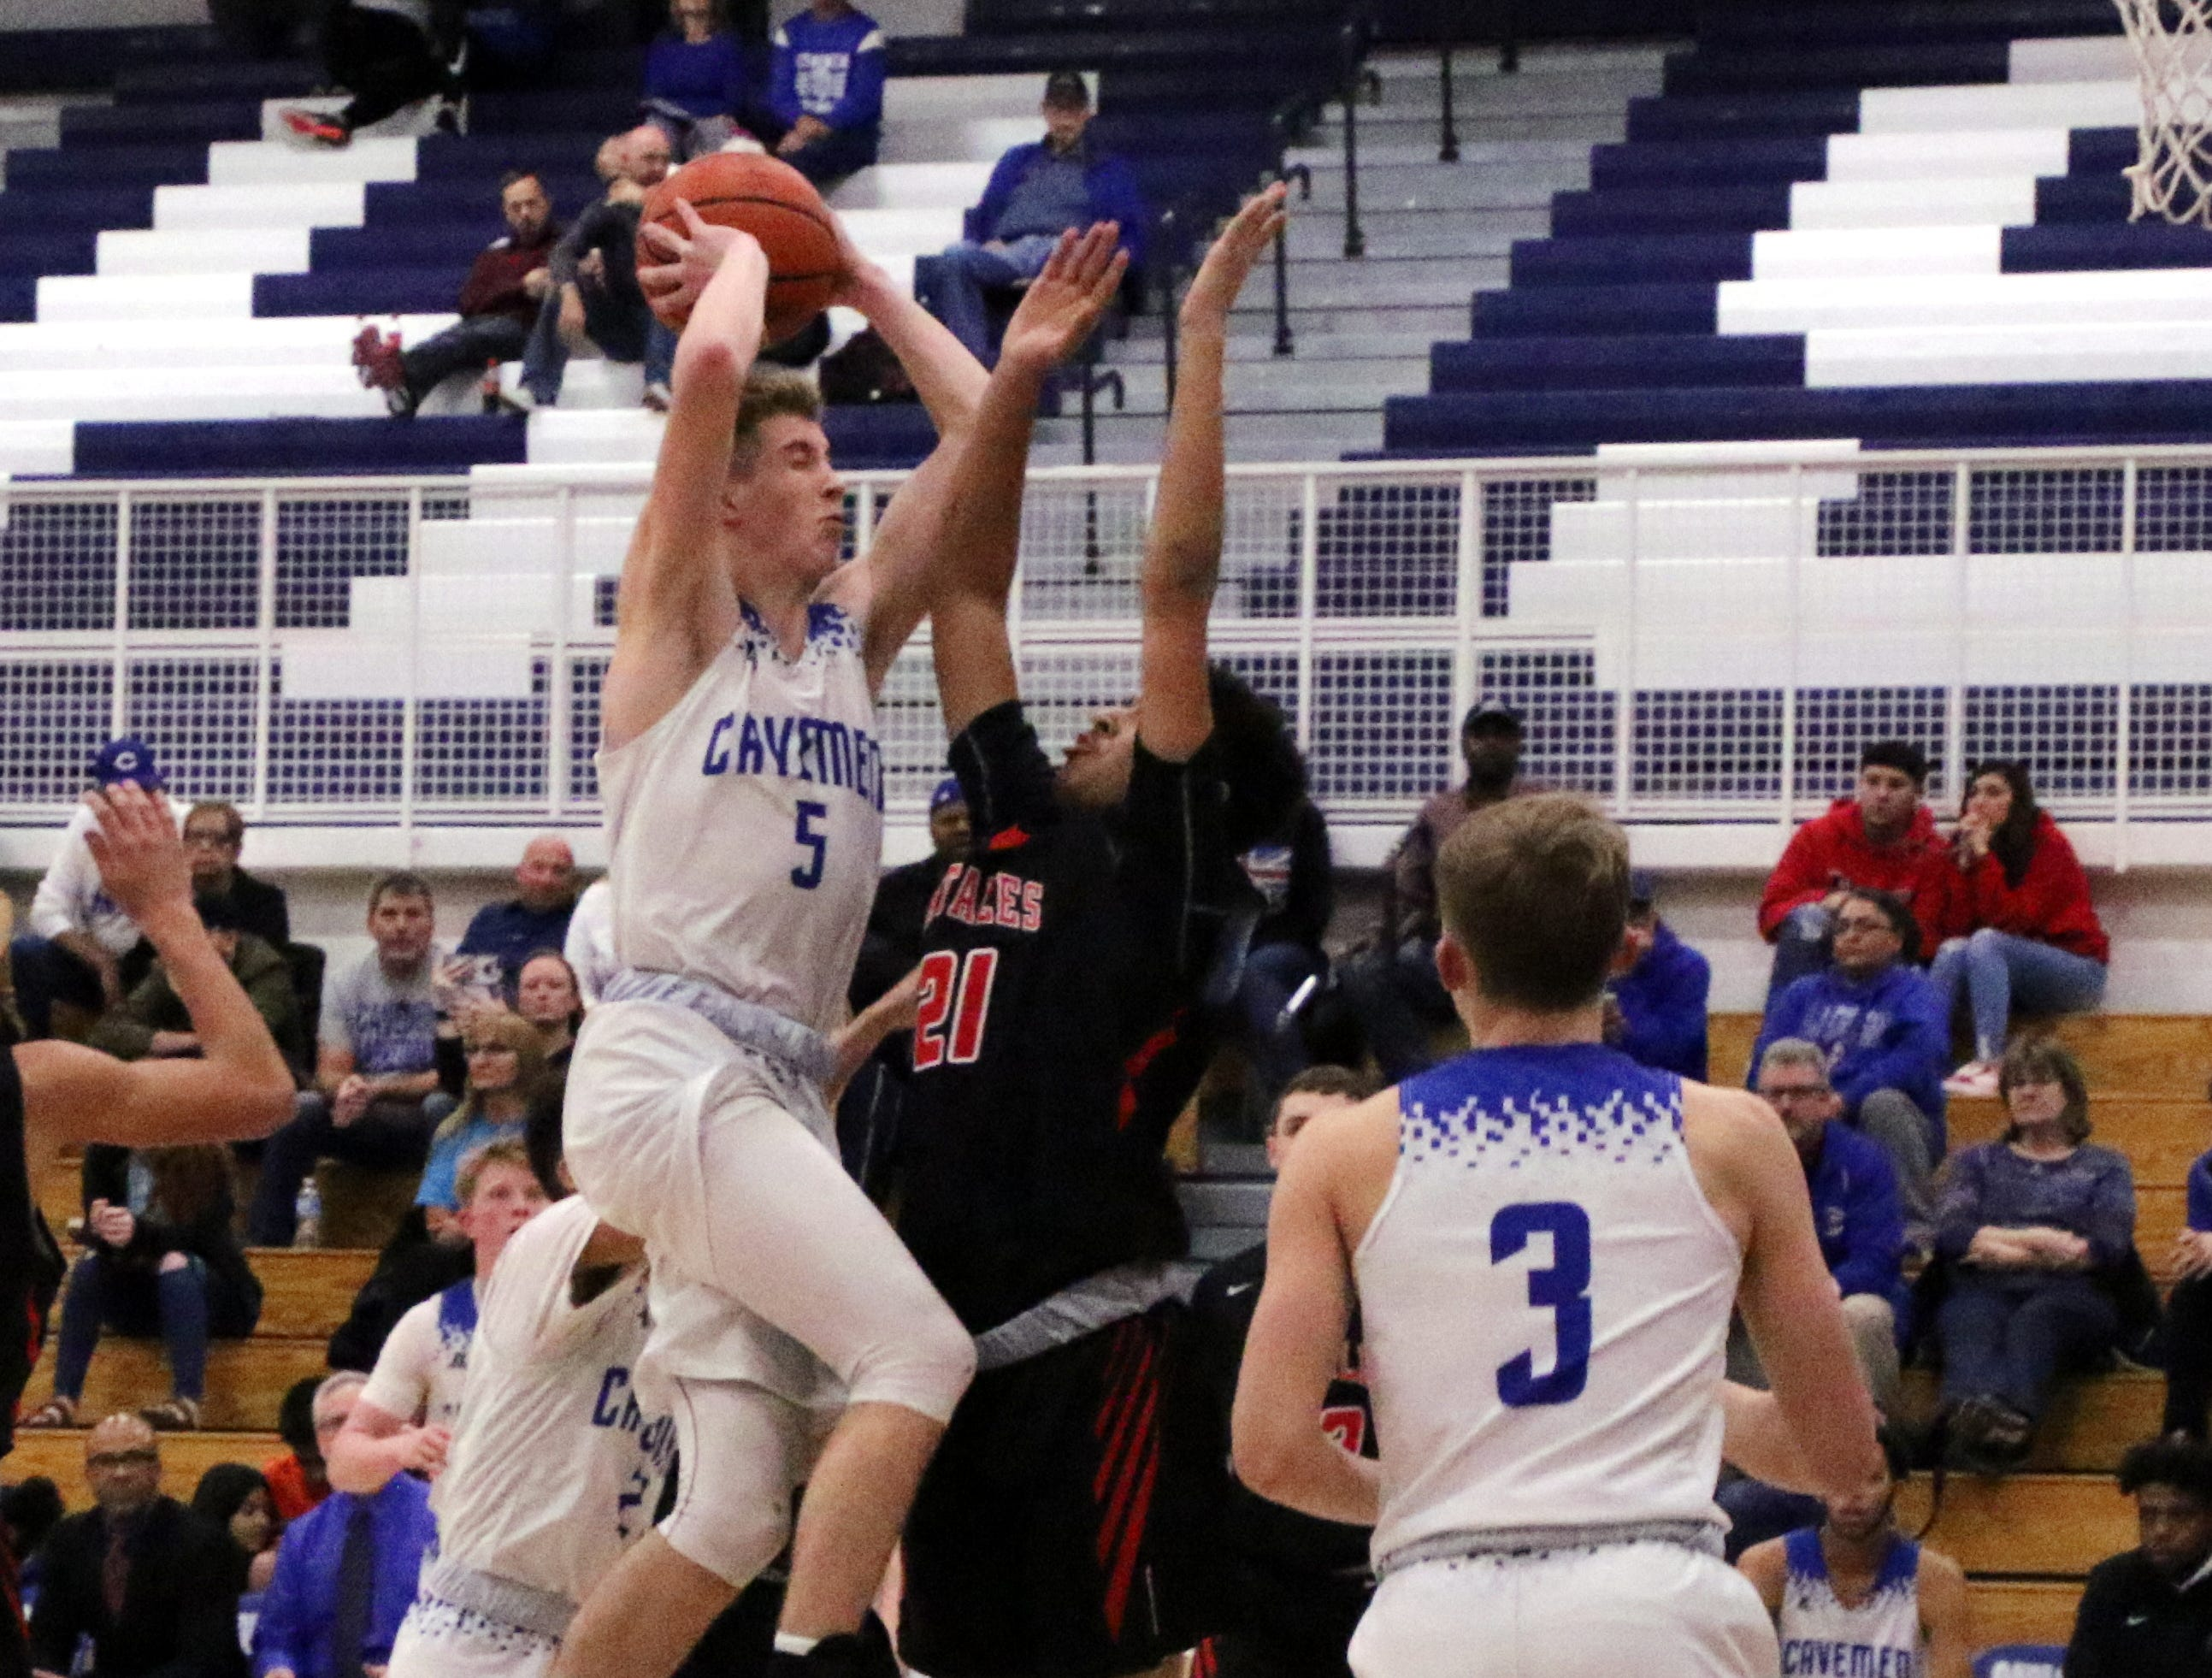 Evan Sullivan goes for a contested layup in the second half of Tuesday's game against Portales.